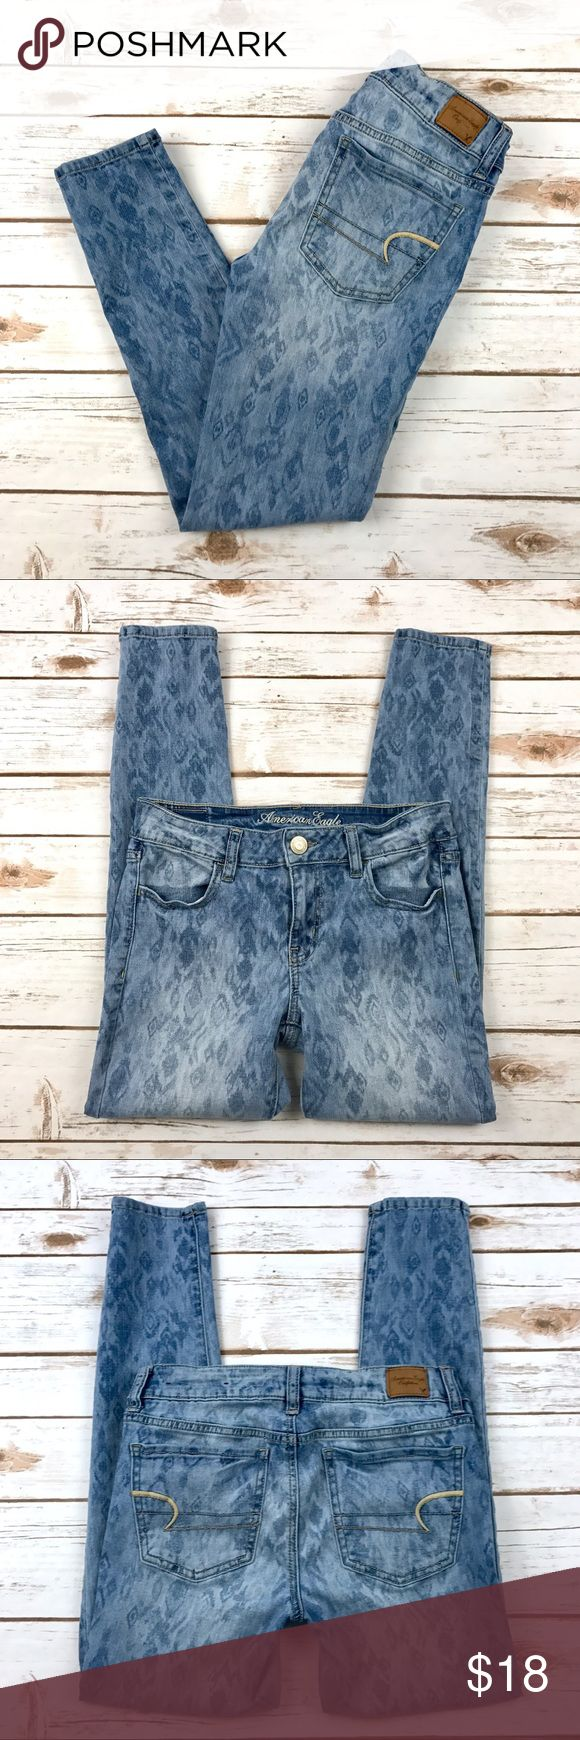 """American Eagle Jegging Jeans Ankle LengthSize 4 American Eagle Jegging Jeans Super Stretch Ankle Length Size 4 Materials: 77% cotton, 14% polyester, 13% rayon, 1% spandex Pre-owned in excellent condition!   Actual measurements taken laying flat: waist- 13.5"""" rise- 7.75"""" inseam- 26.5"""" leg opening- 4.75""""   Location- C16 American Eagle Outfitters Jeans Skinny"""